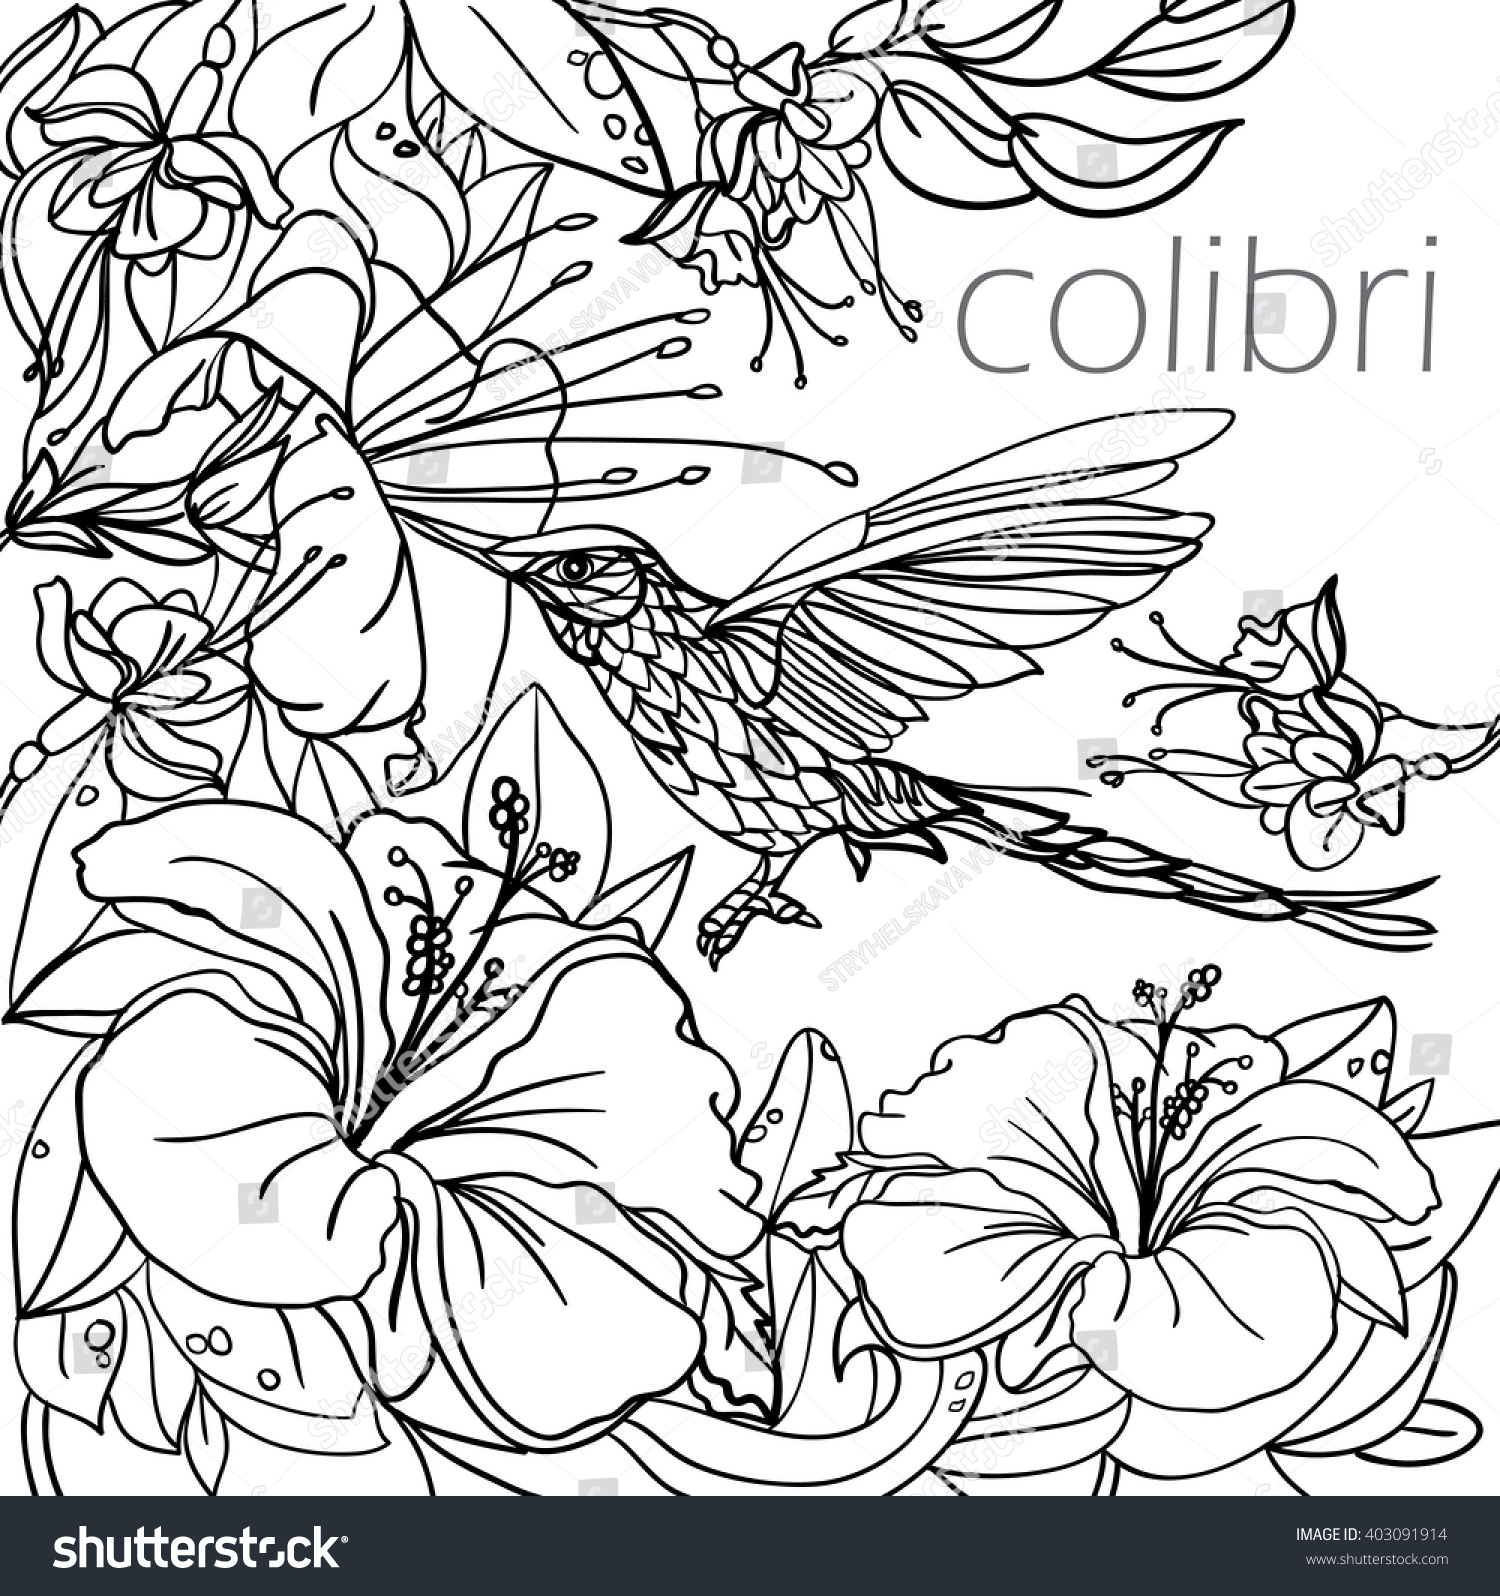 Coloring Pages Tropical Birds Flowers Leaves Stock Vector 403091914 ...